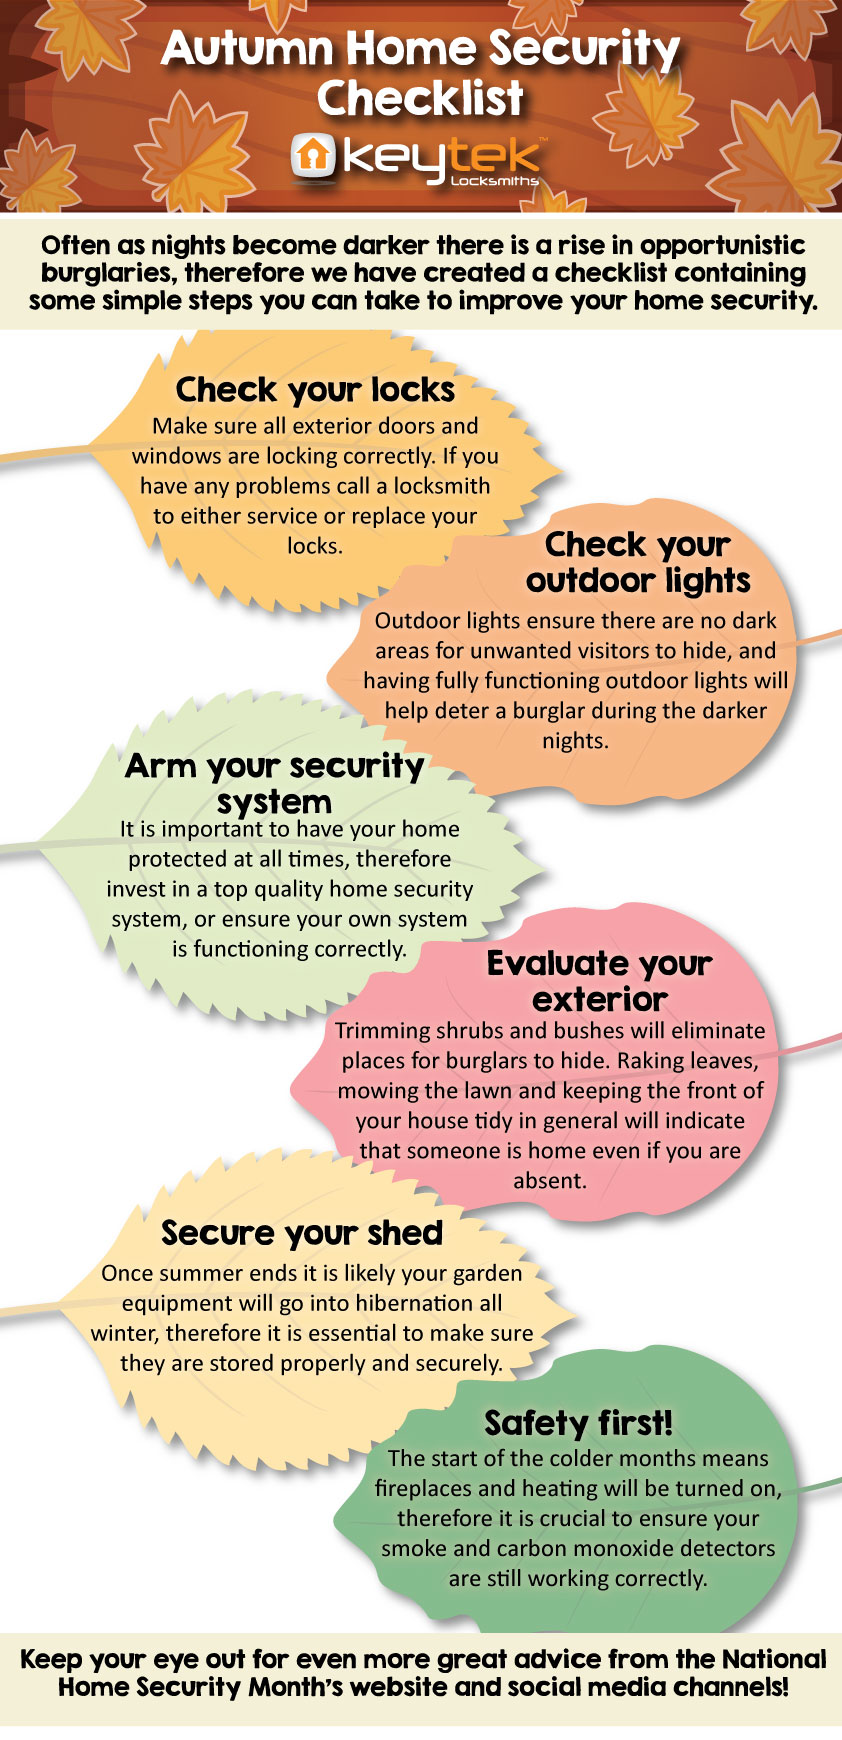 security checklist autumn